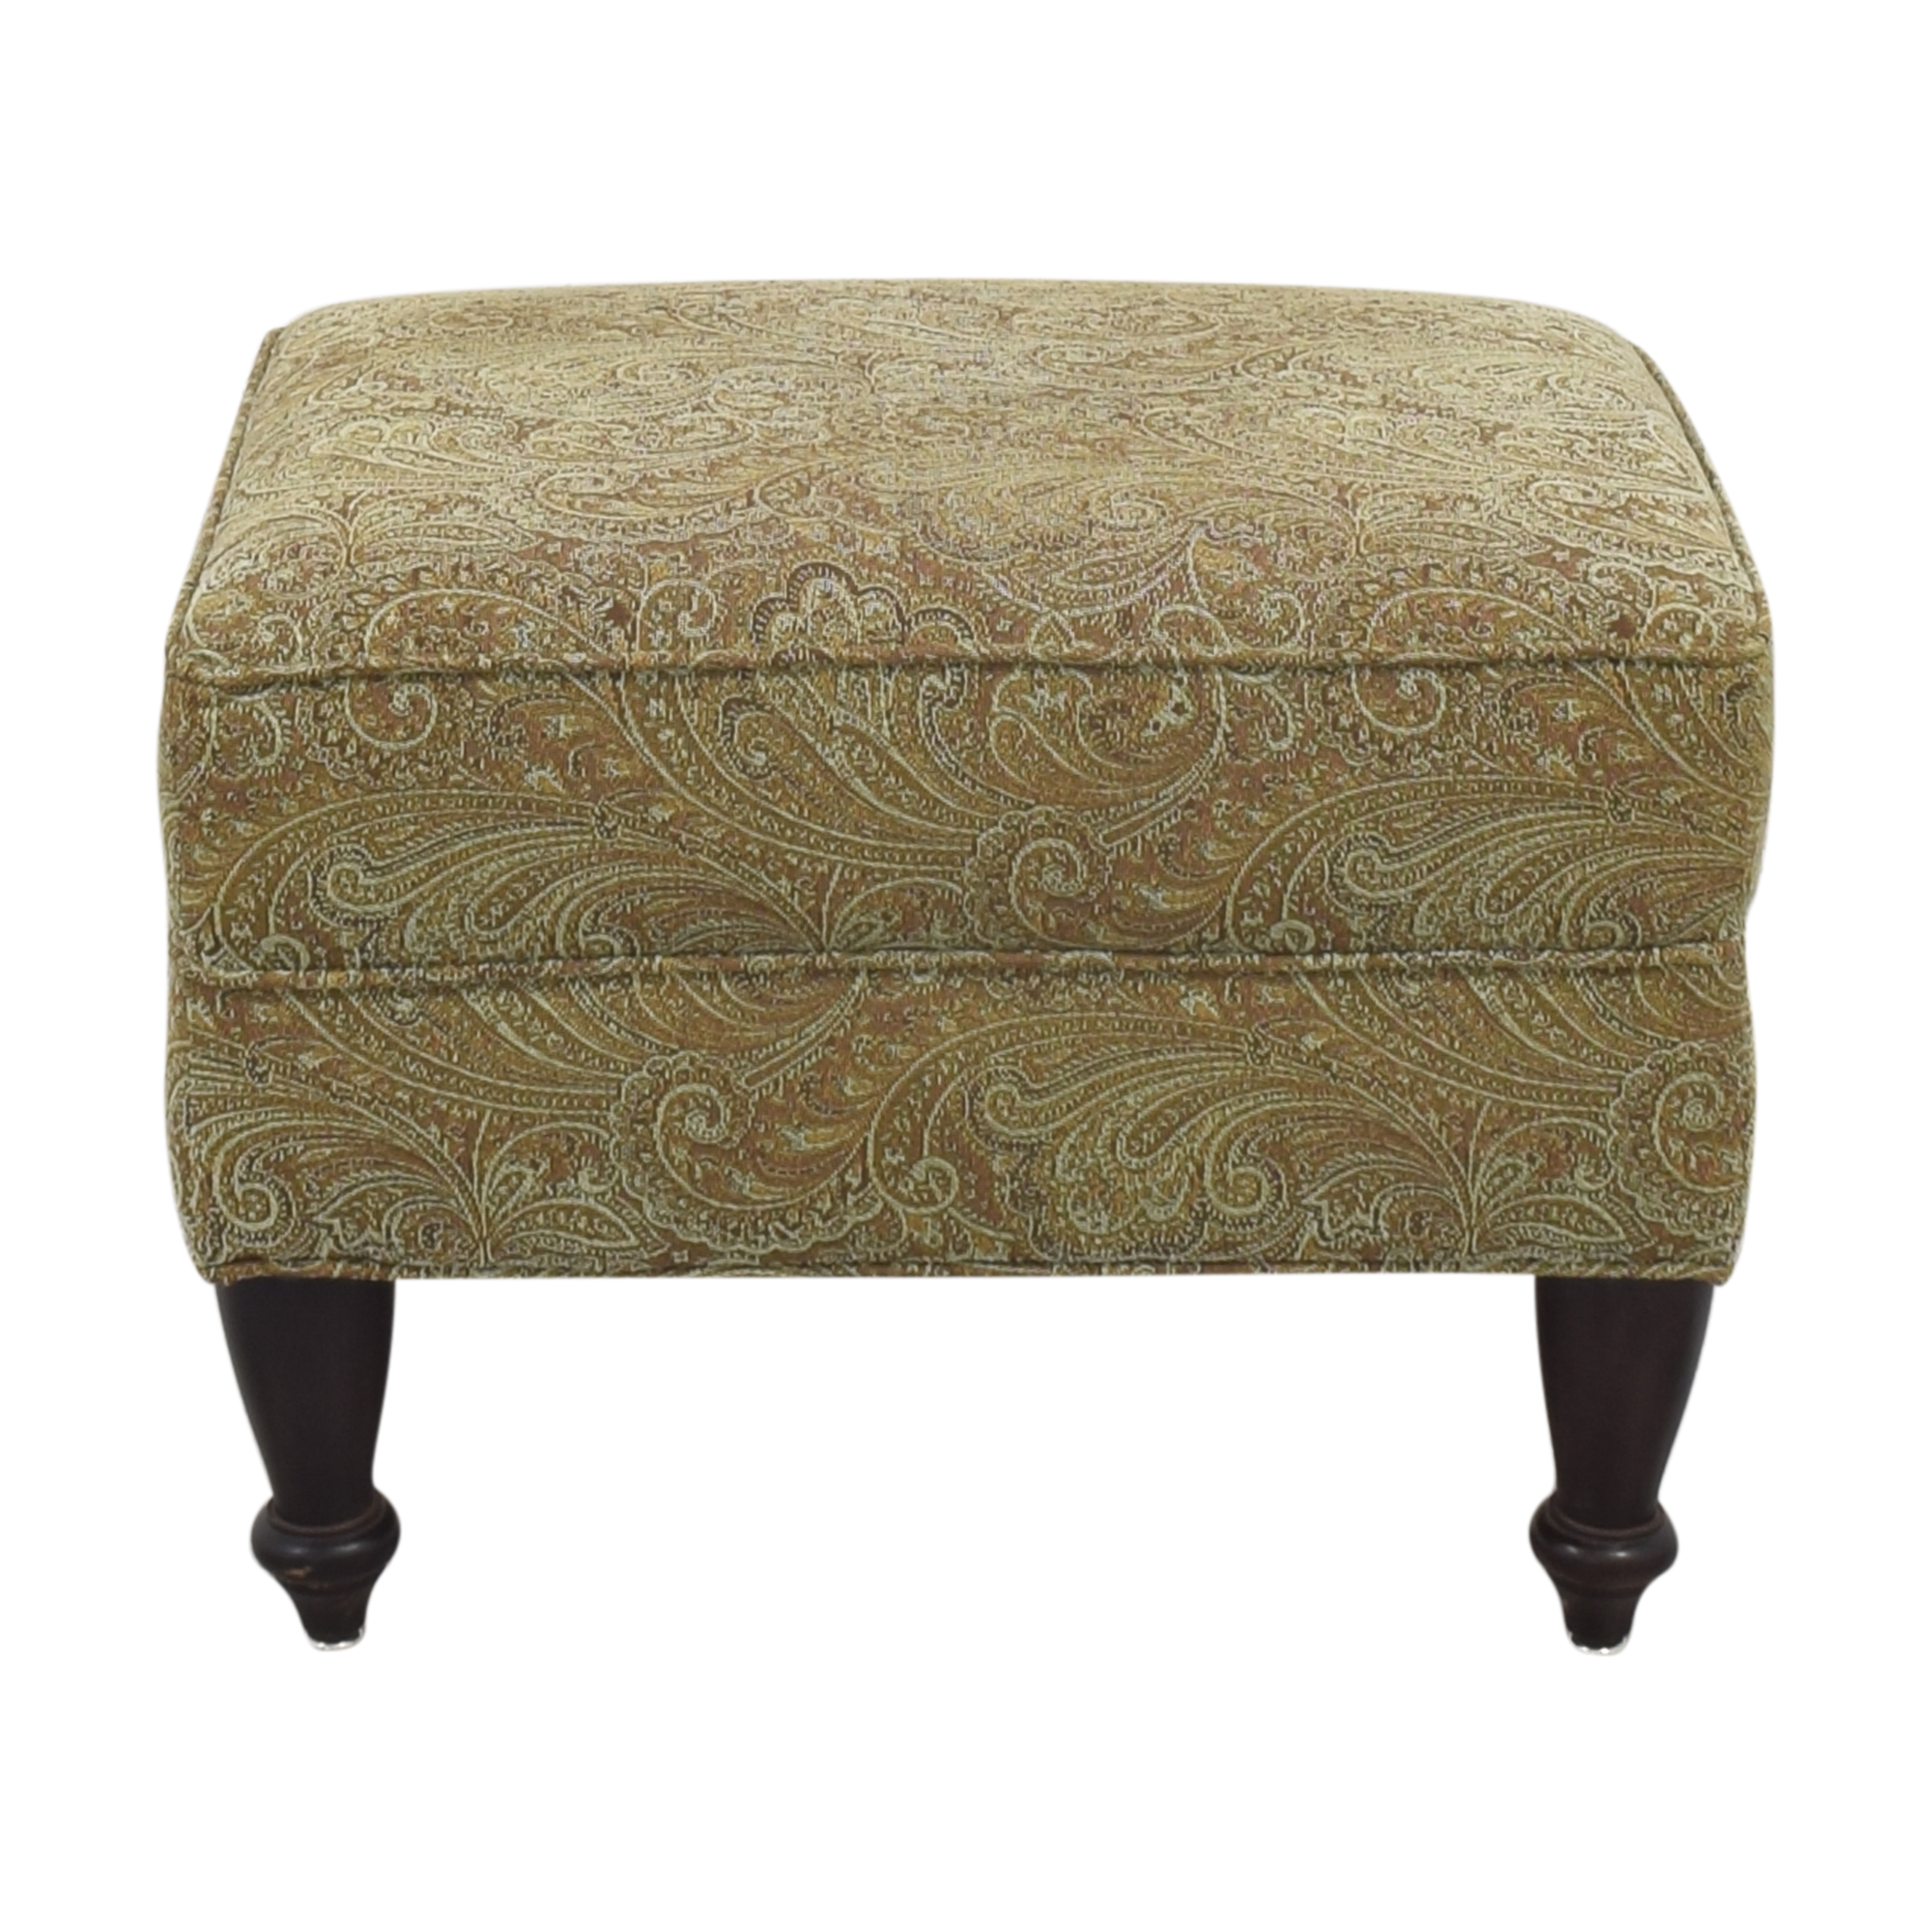 Rowe Furniture Rowe Furniture Upholstered Ottoman ma